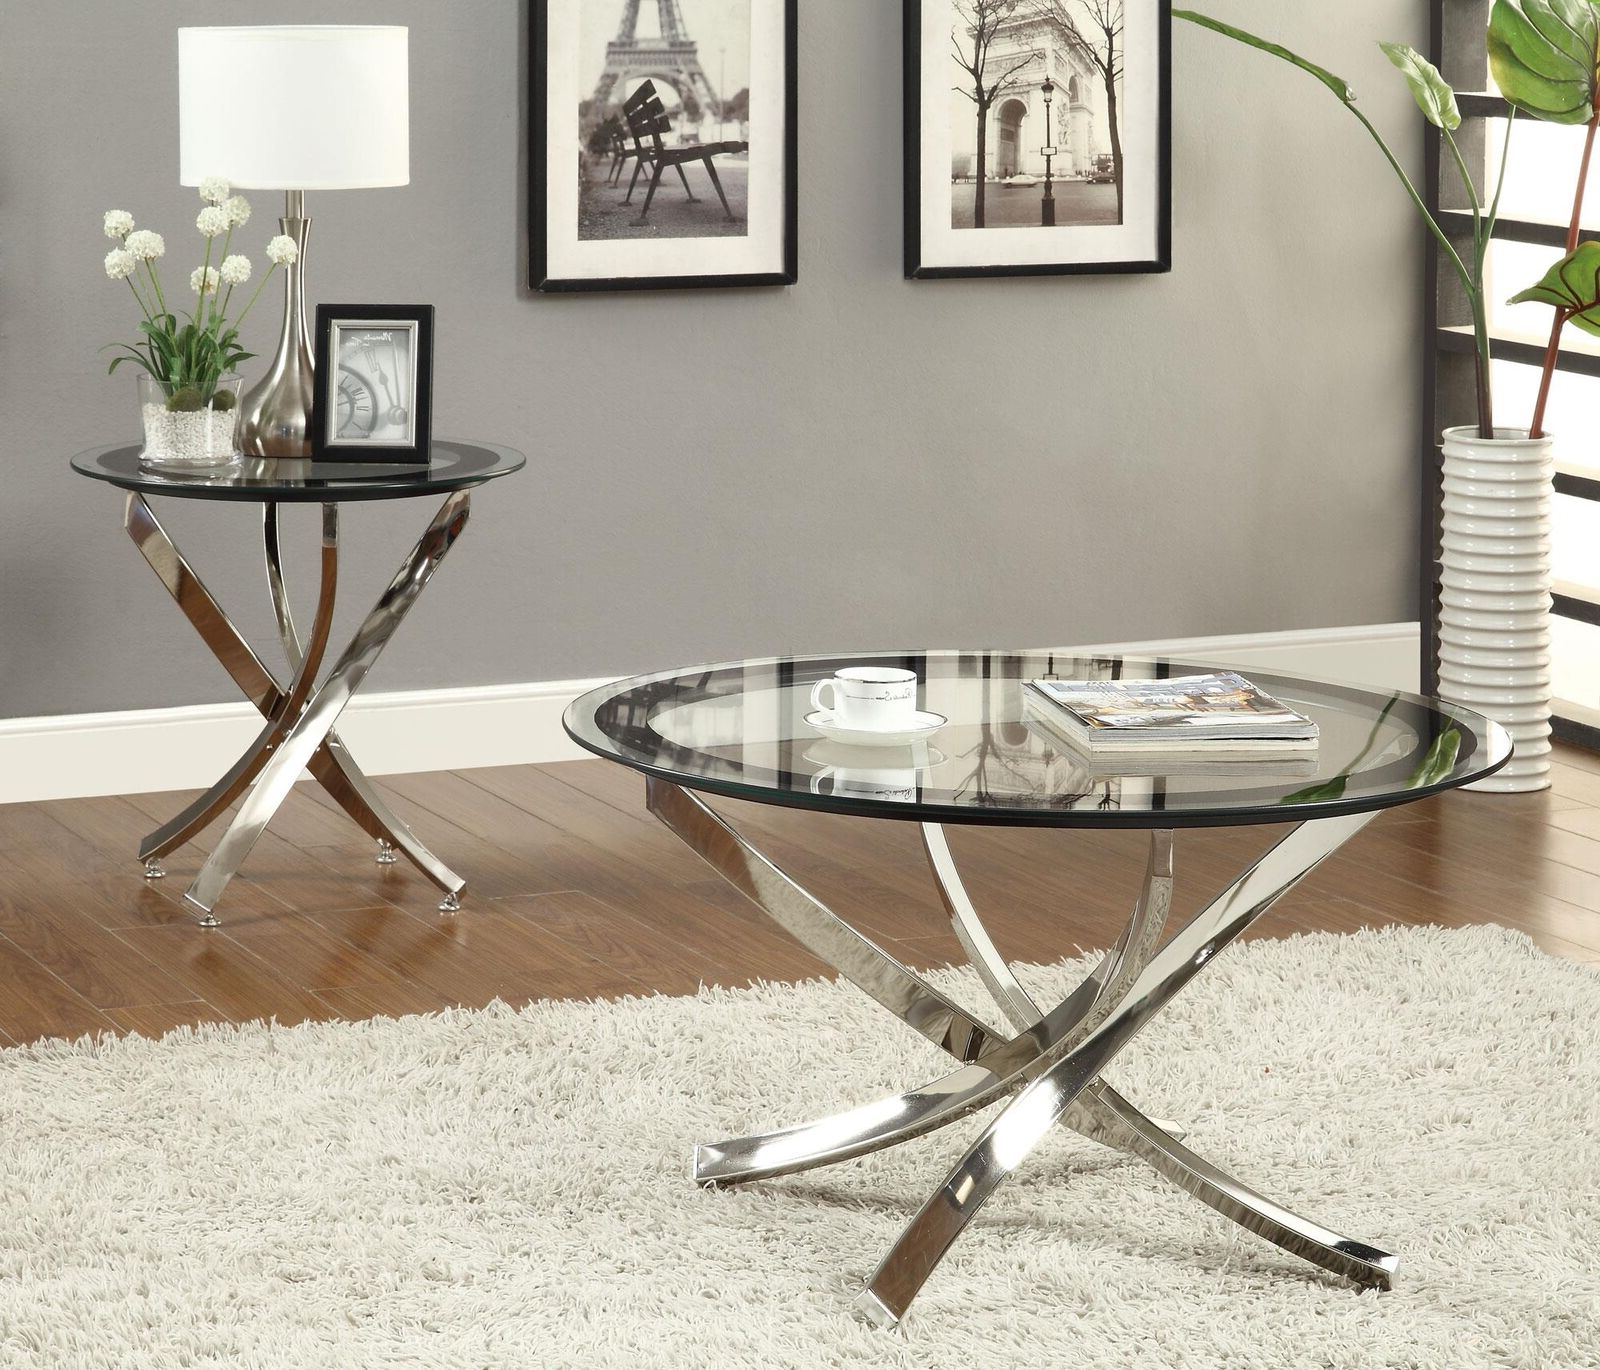 Details About Glass Top Chrome Coffee Table Chrome Contemporary For Most Current Cortesi Home Remi Contemporary Chrome Glass Coffee Tables (View 8 of 20)